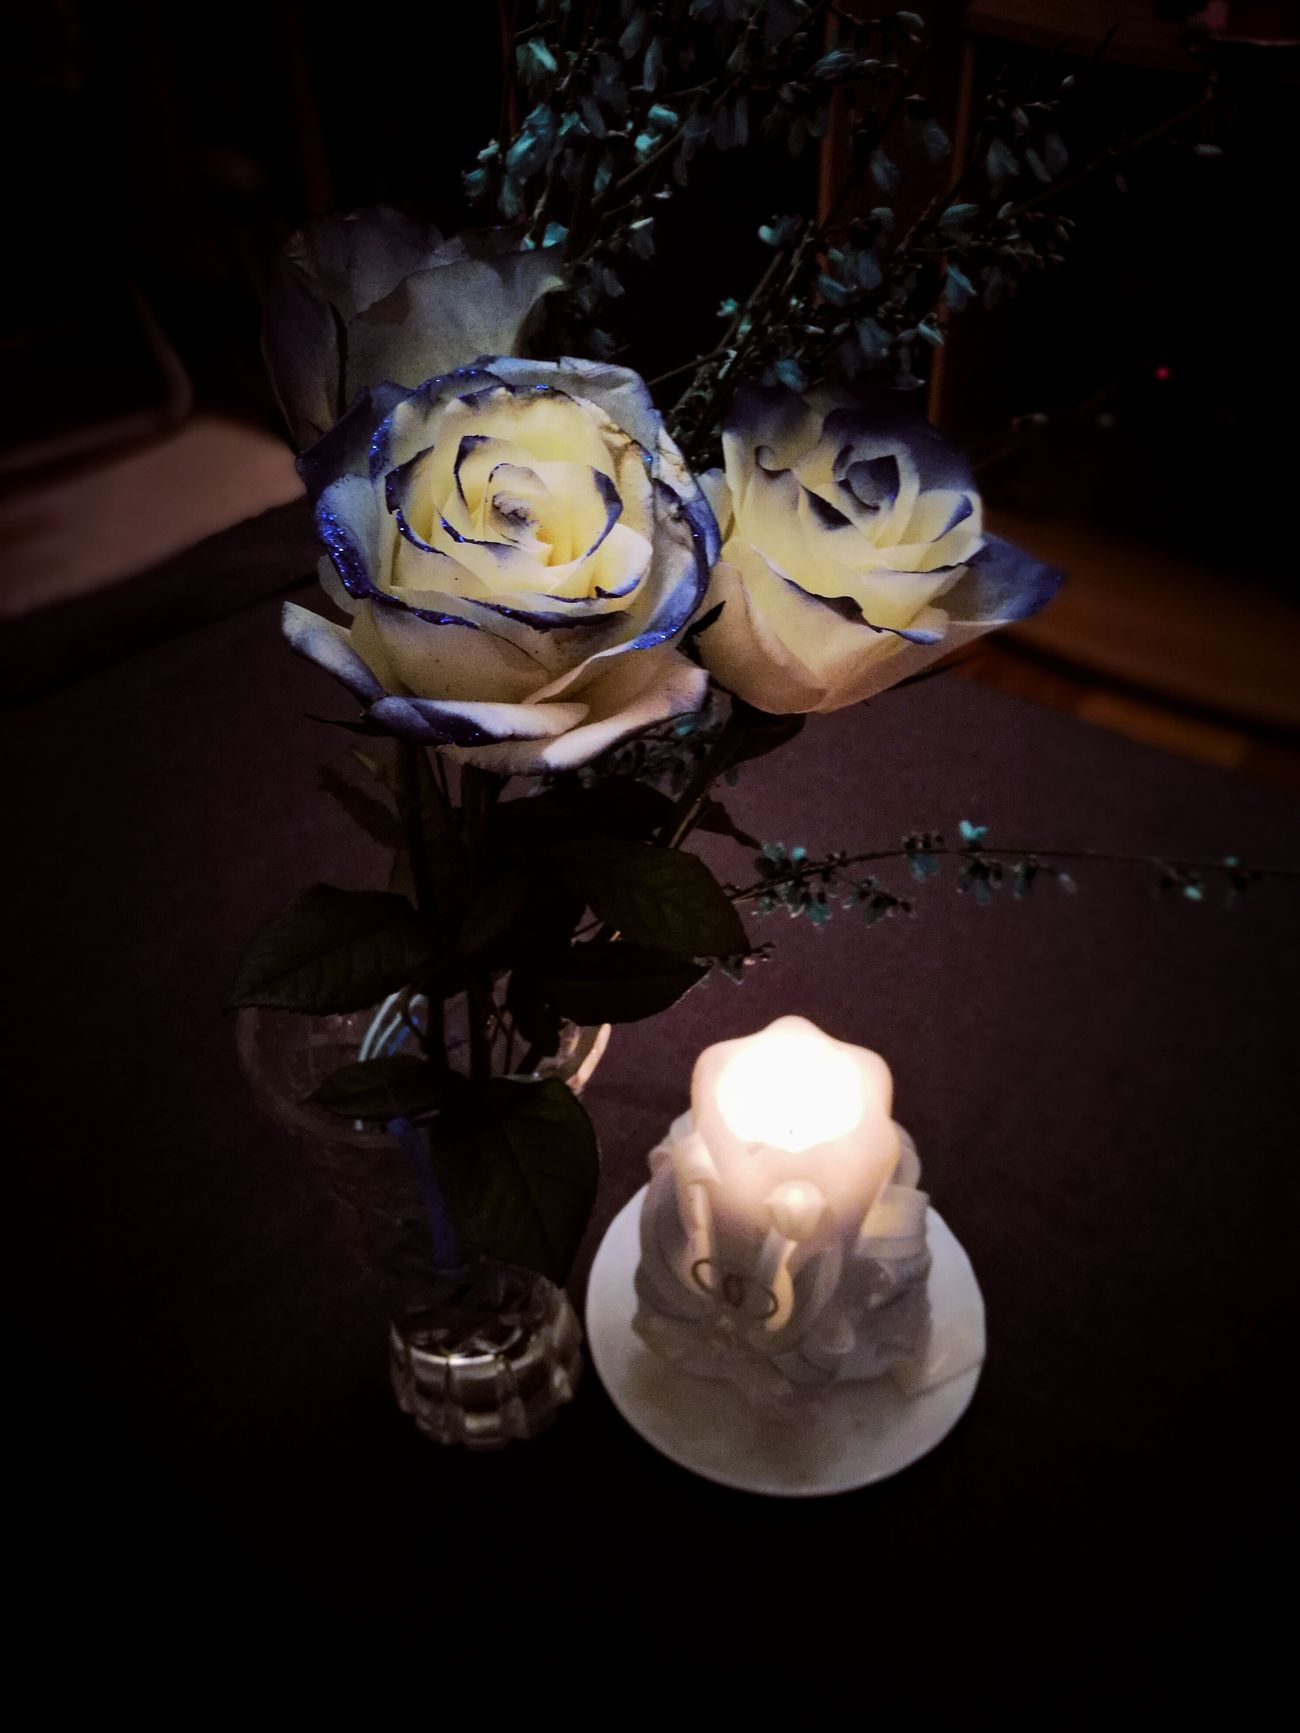 Blueroses Flowers Huaweiphotography HuaweiP9 Blooming Macro_flower Blooming Flower Flower Macro Candle Candlelight Candle Light